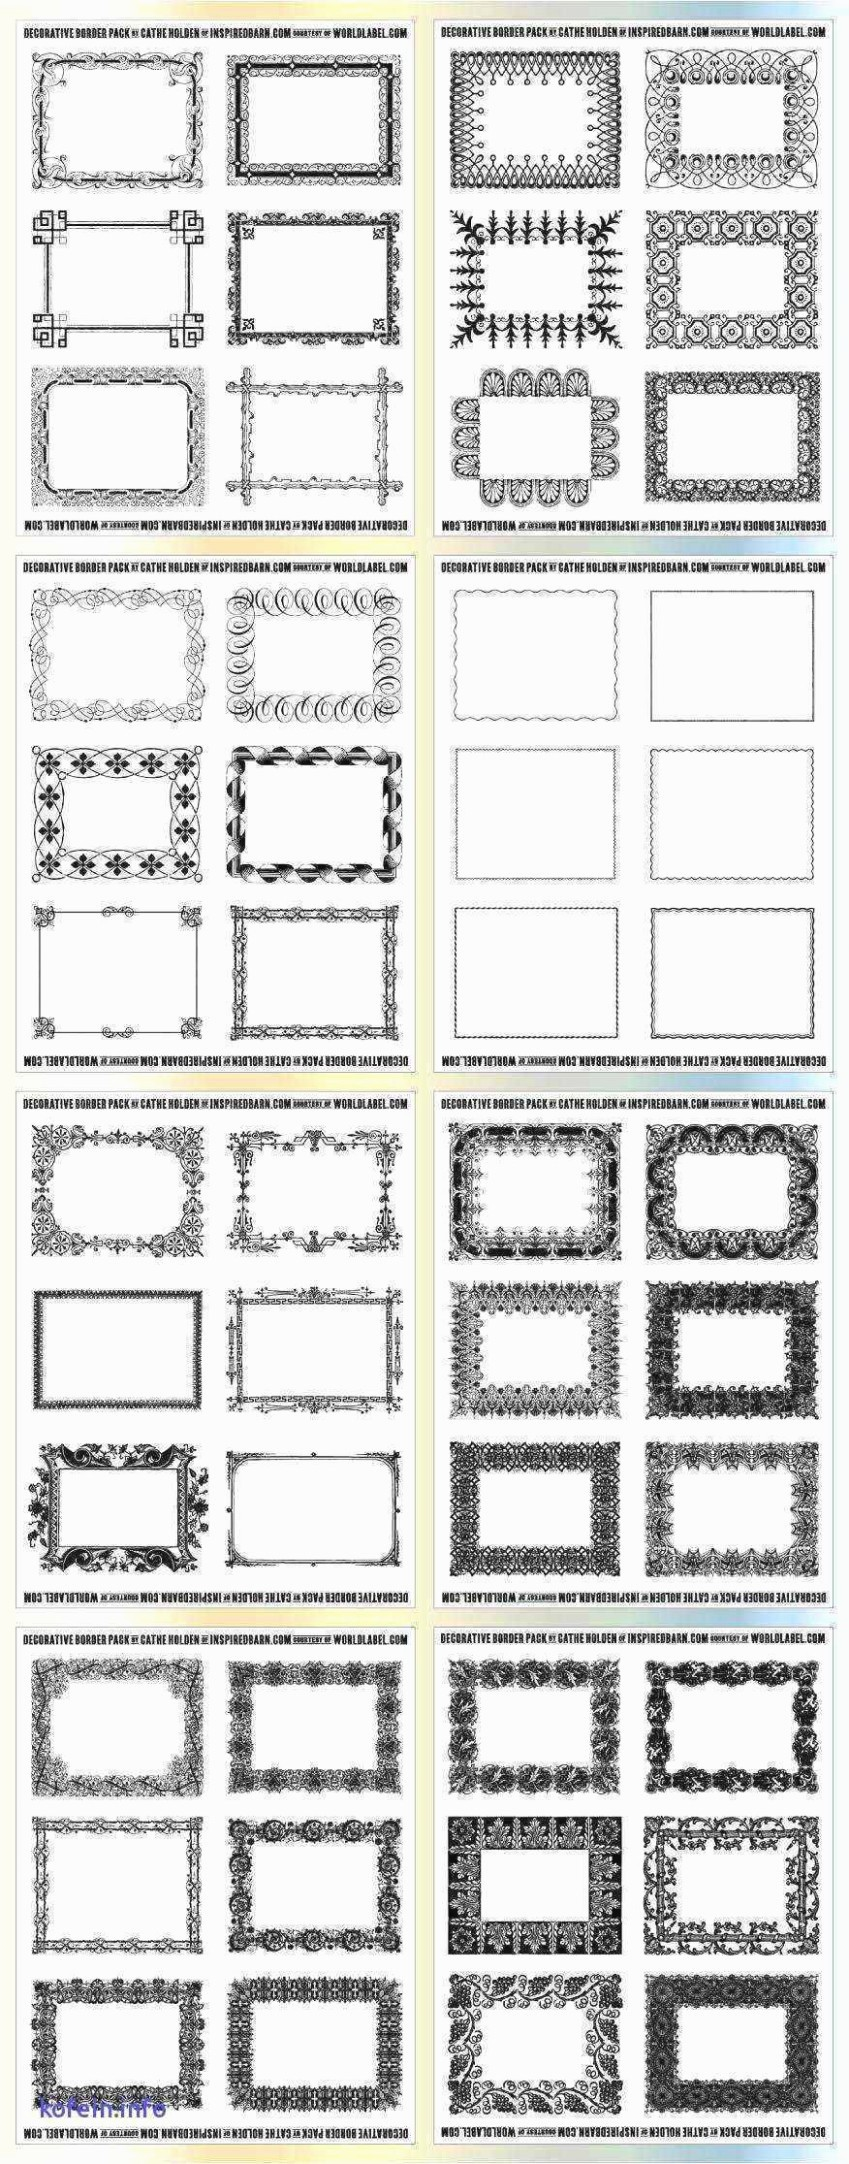 Staples Return Address Labels Template Luxury Seven Precautions You Must